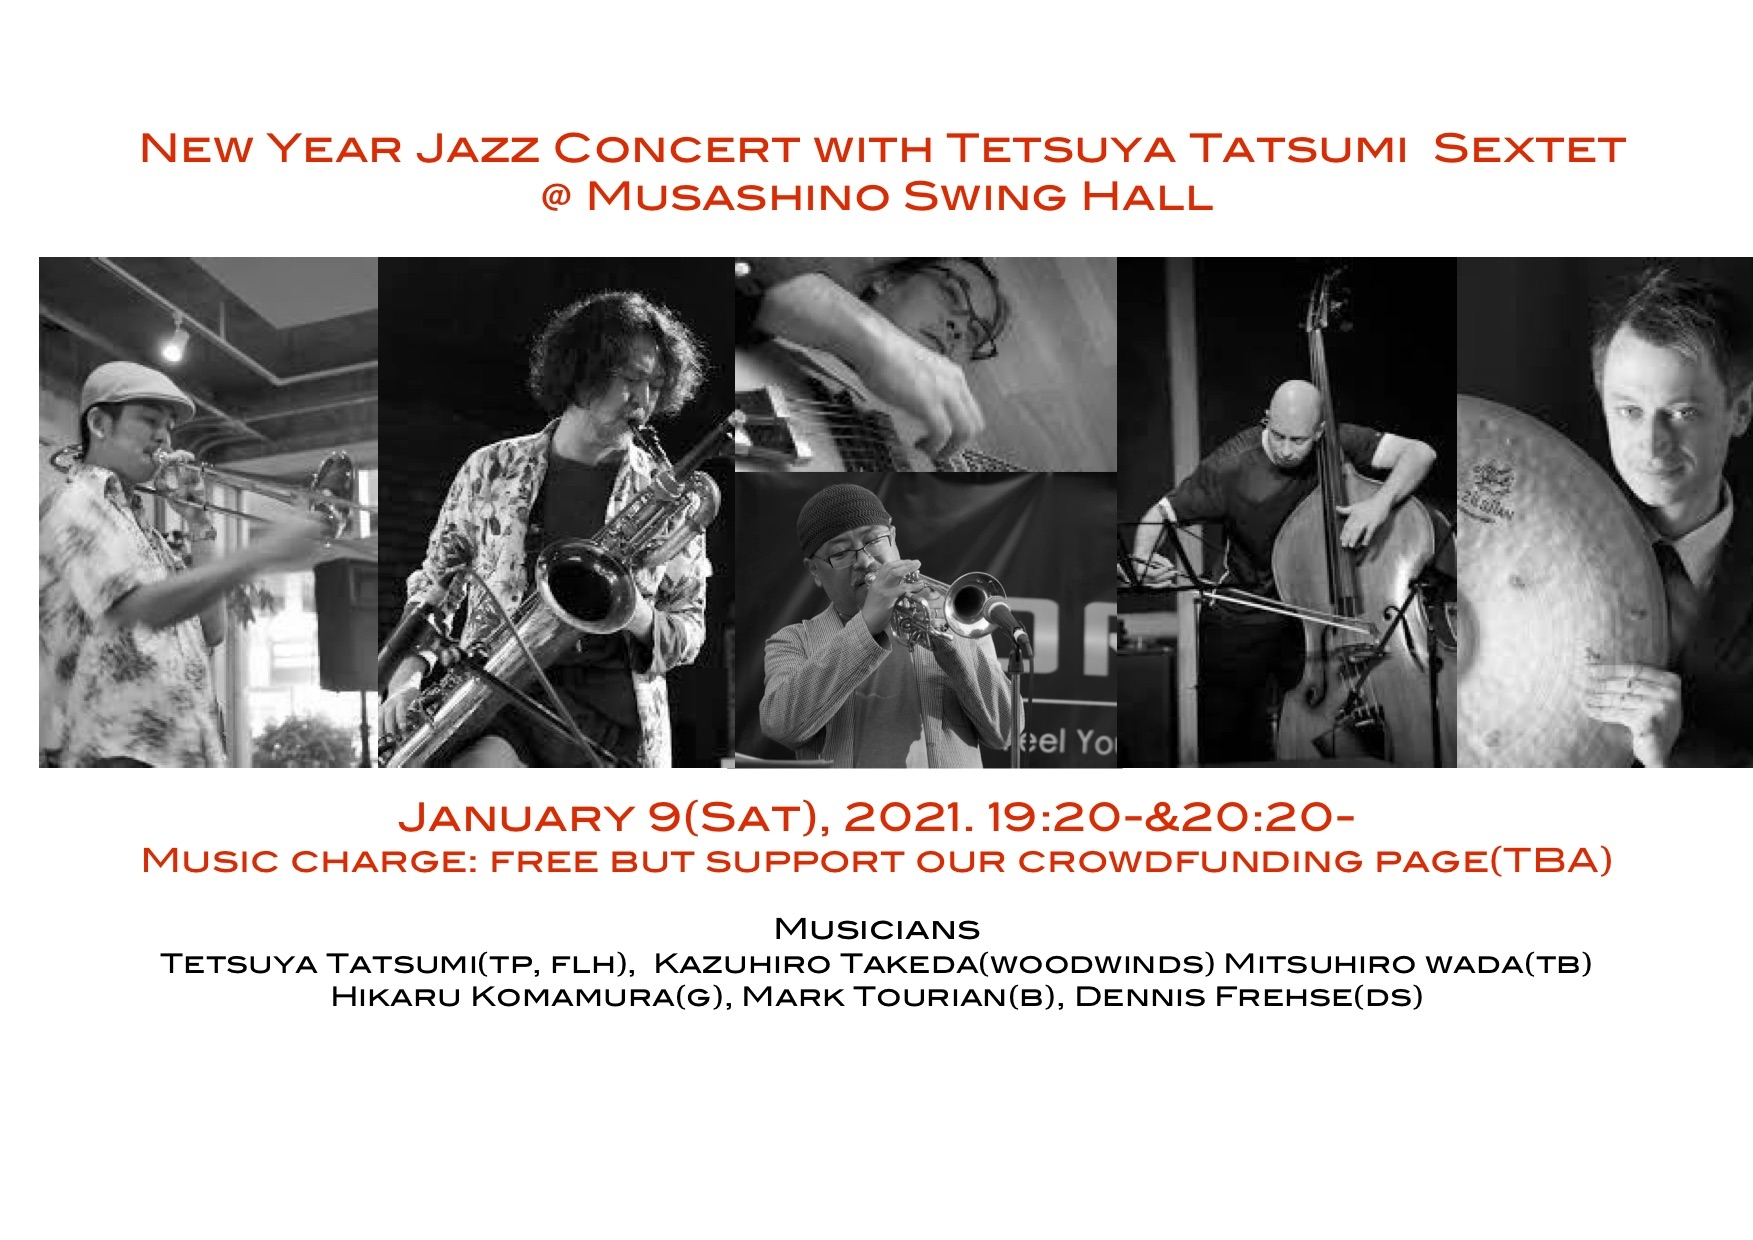 New Year Jazz Concert